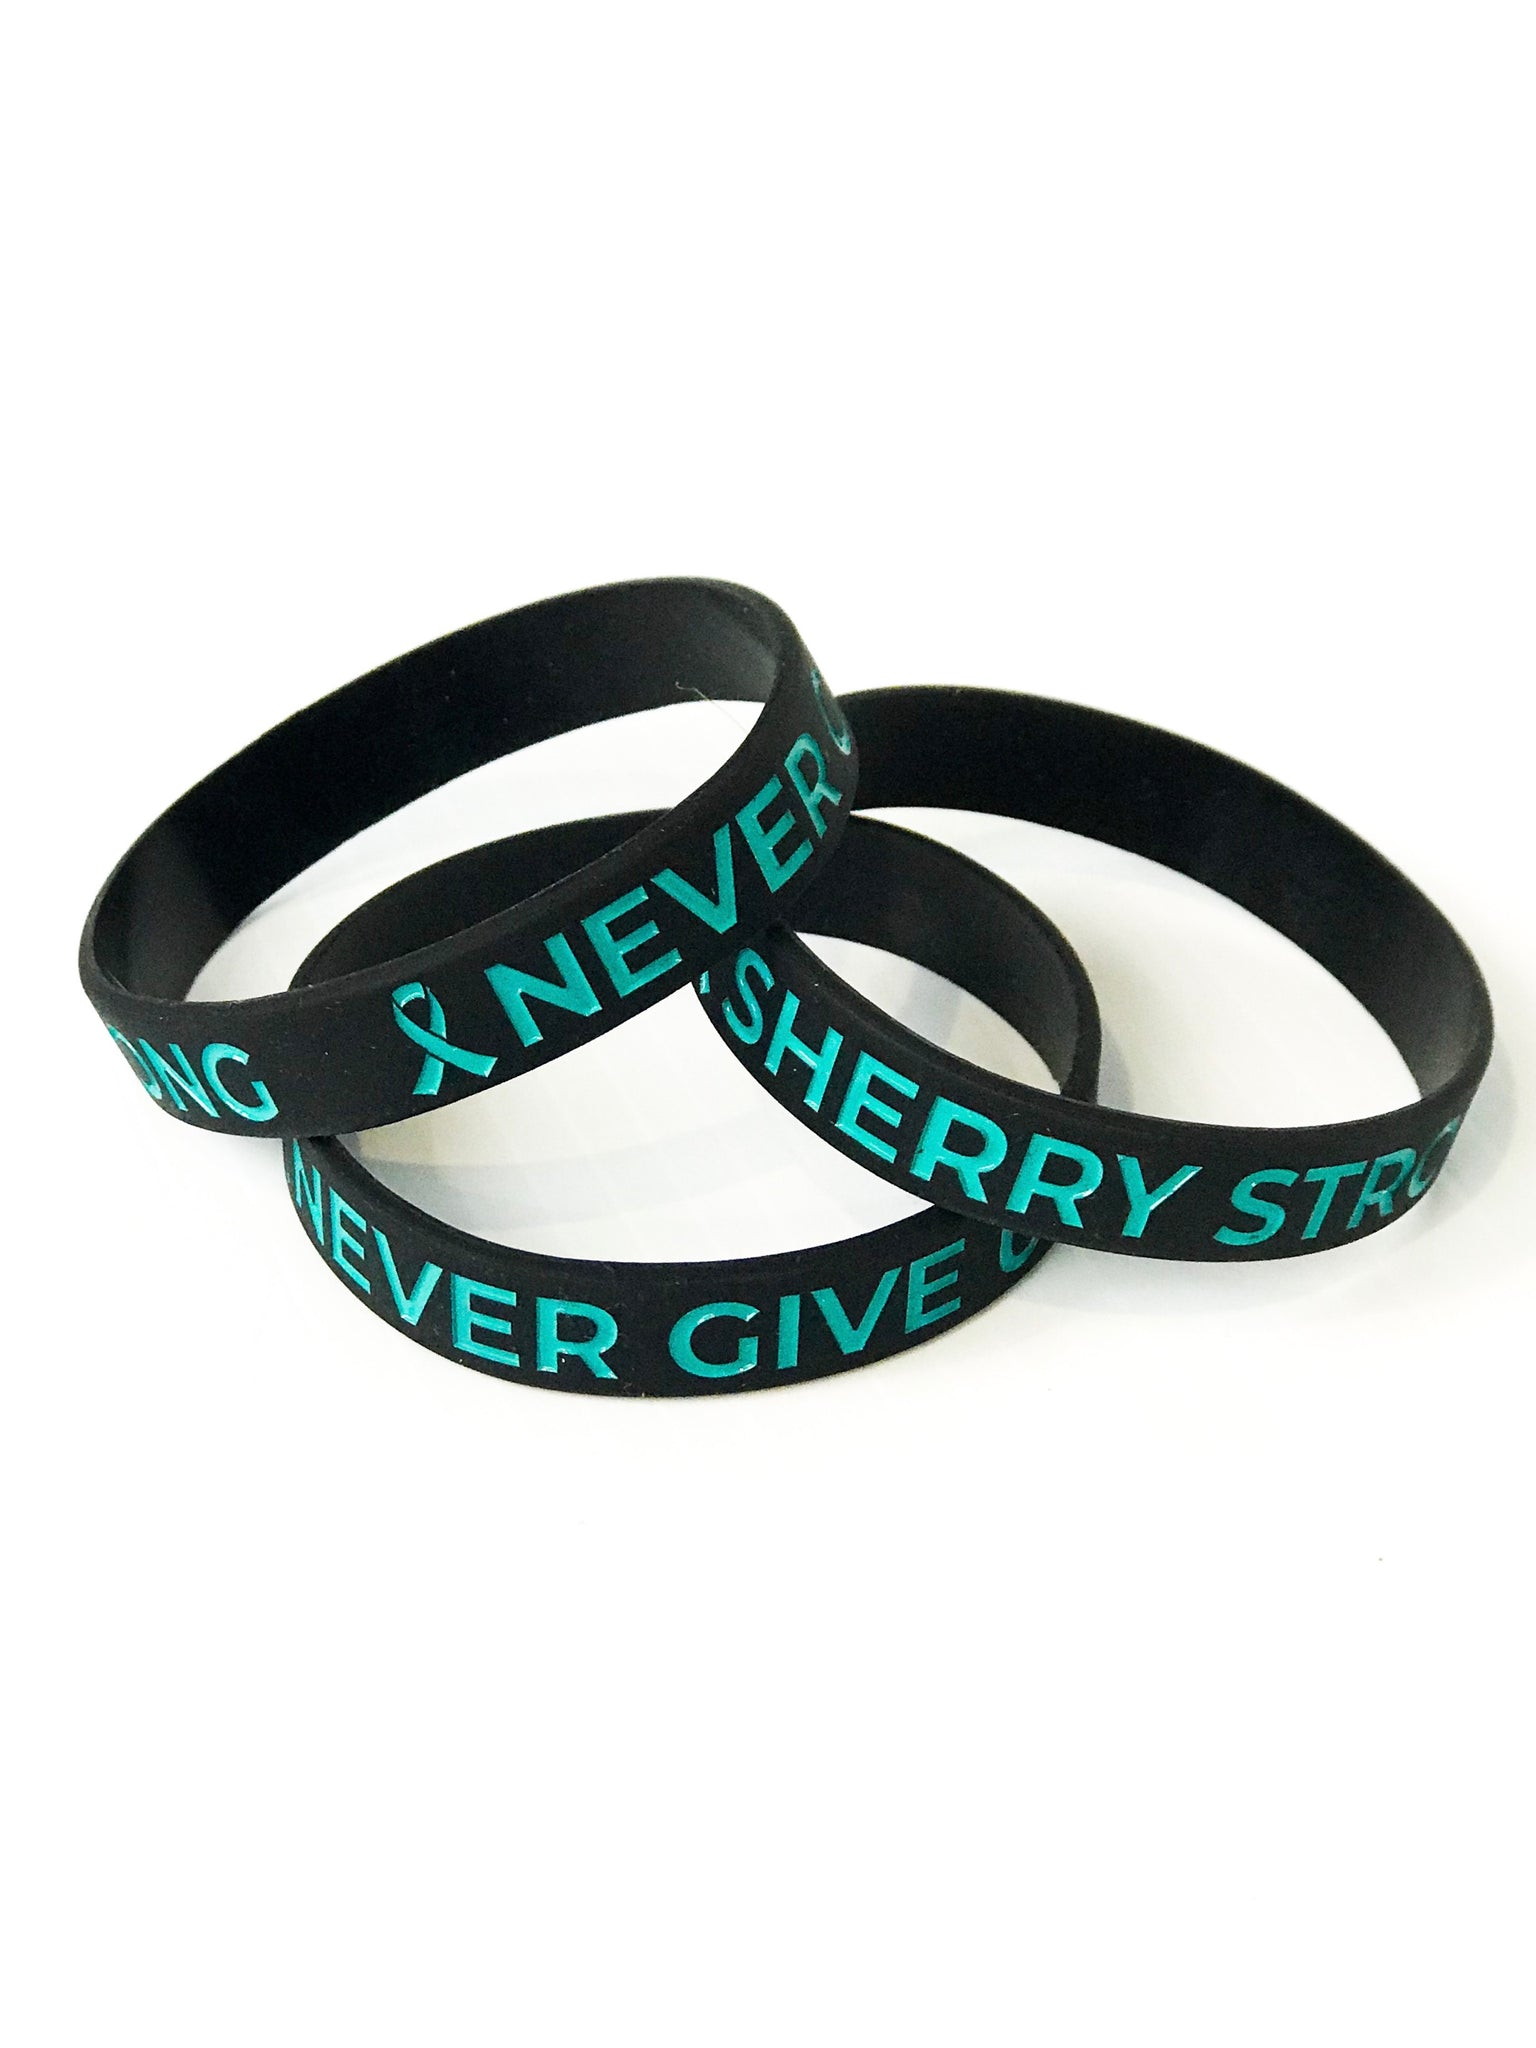 Sherry Strong NGU wristband